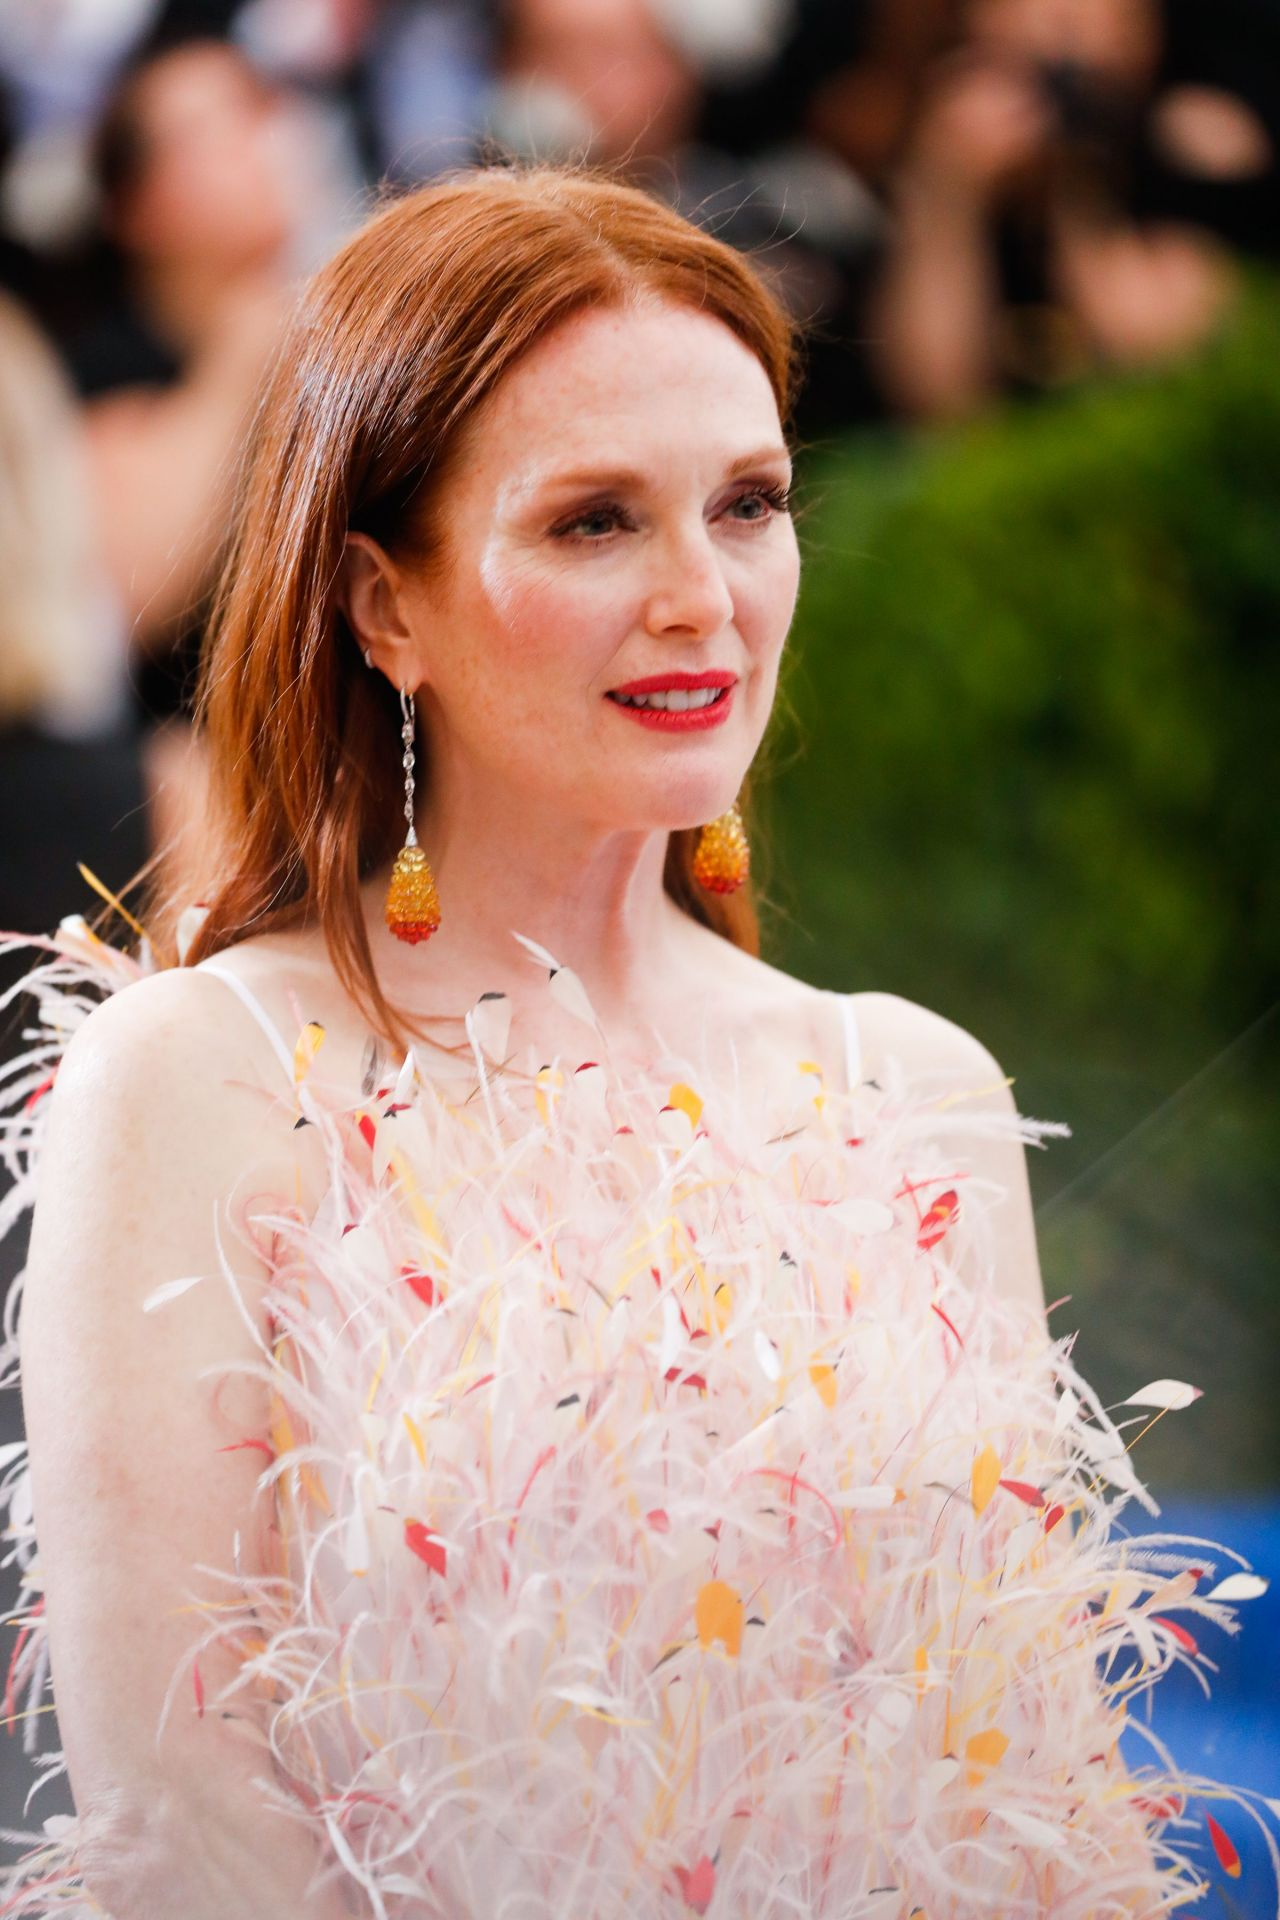 Julianne Moore At Met Gala In New York 05 01 2017